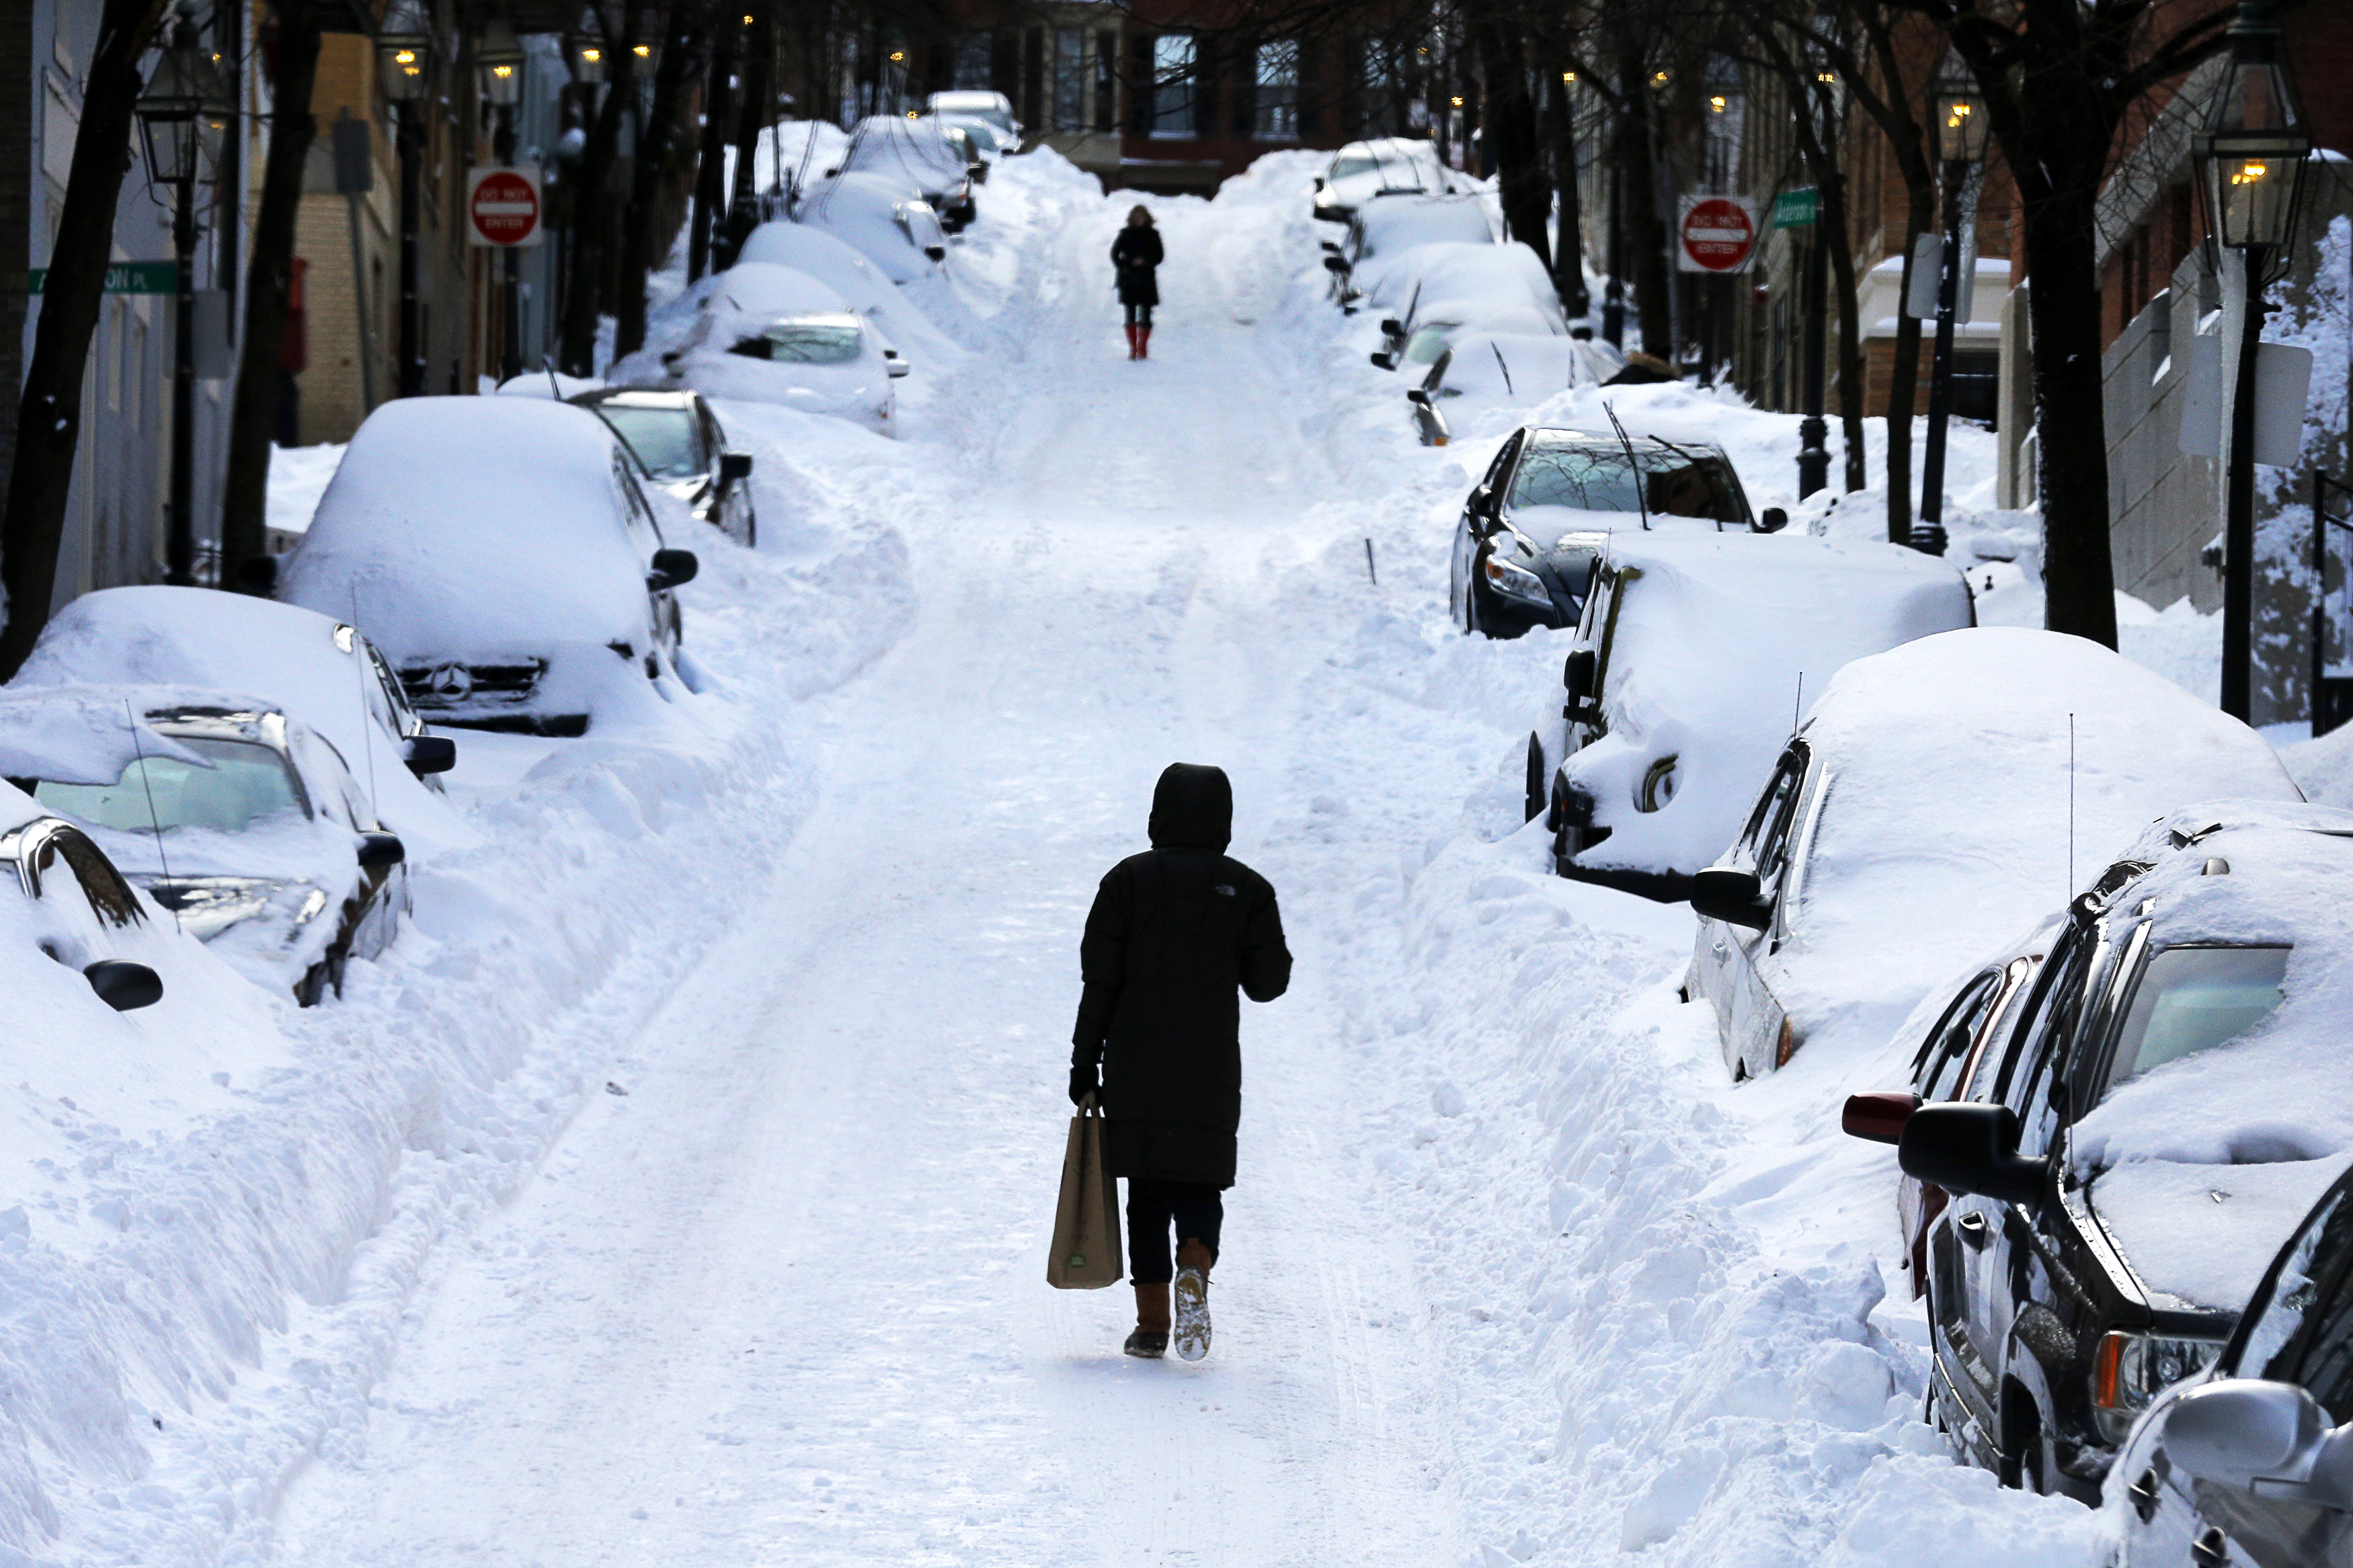 A pedestrian walks in the middle of the street following a winter blizzard in Boston